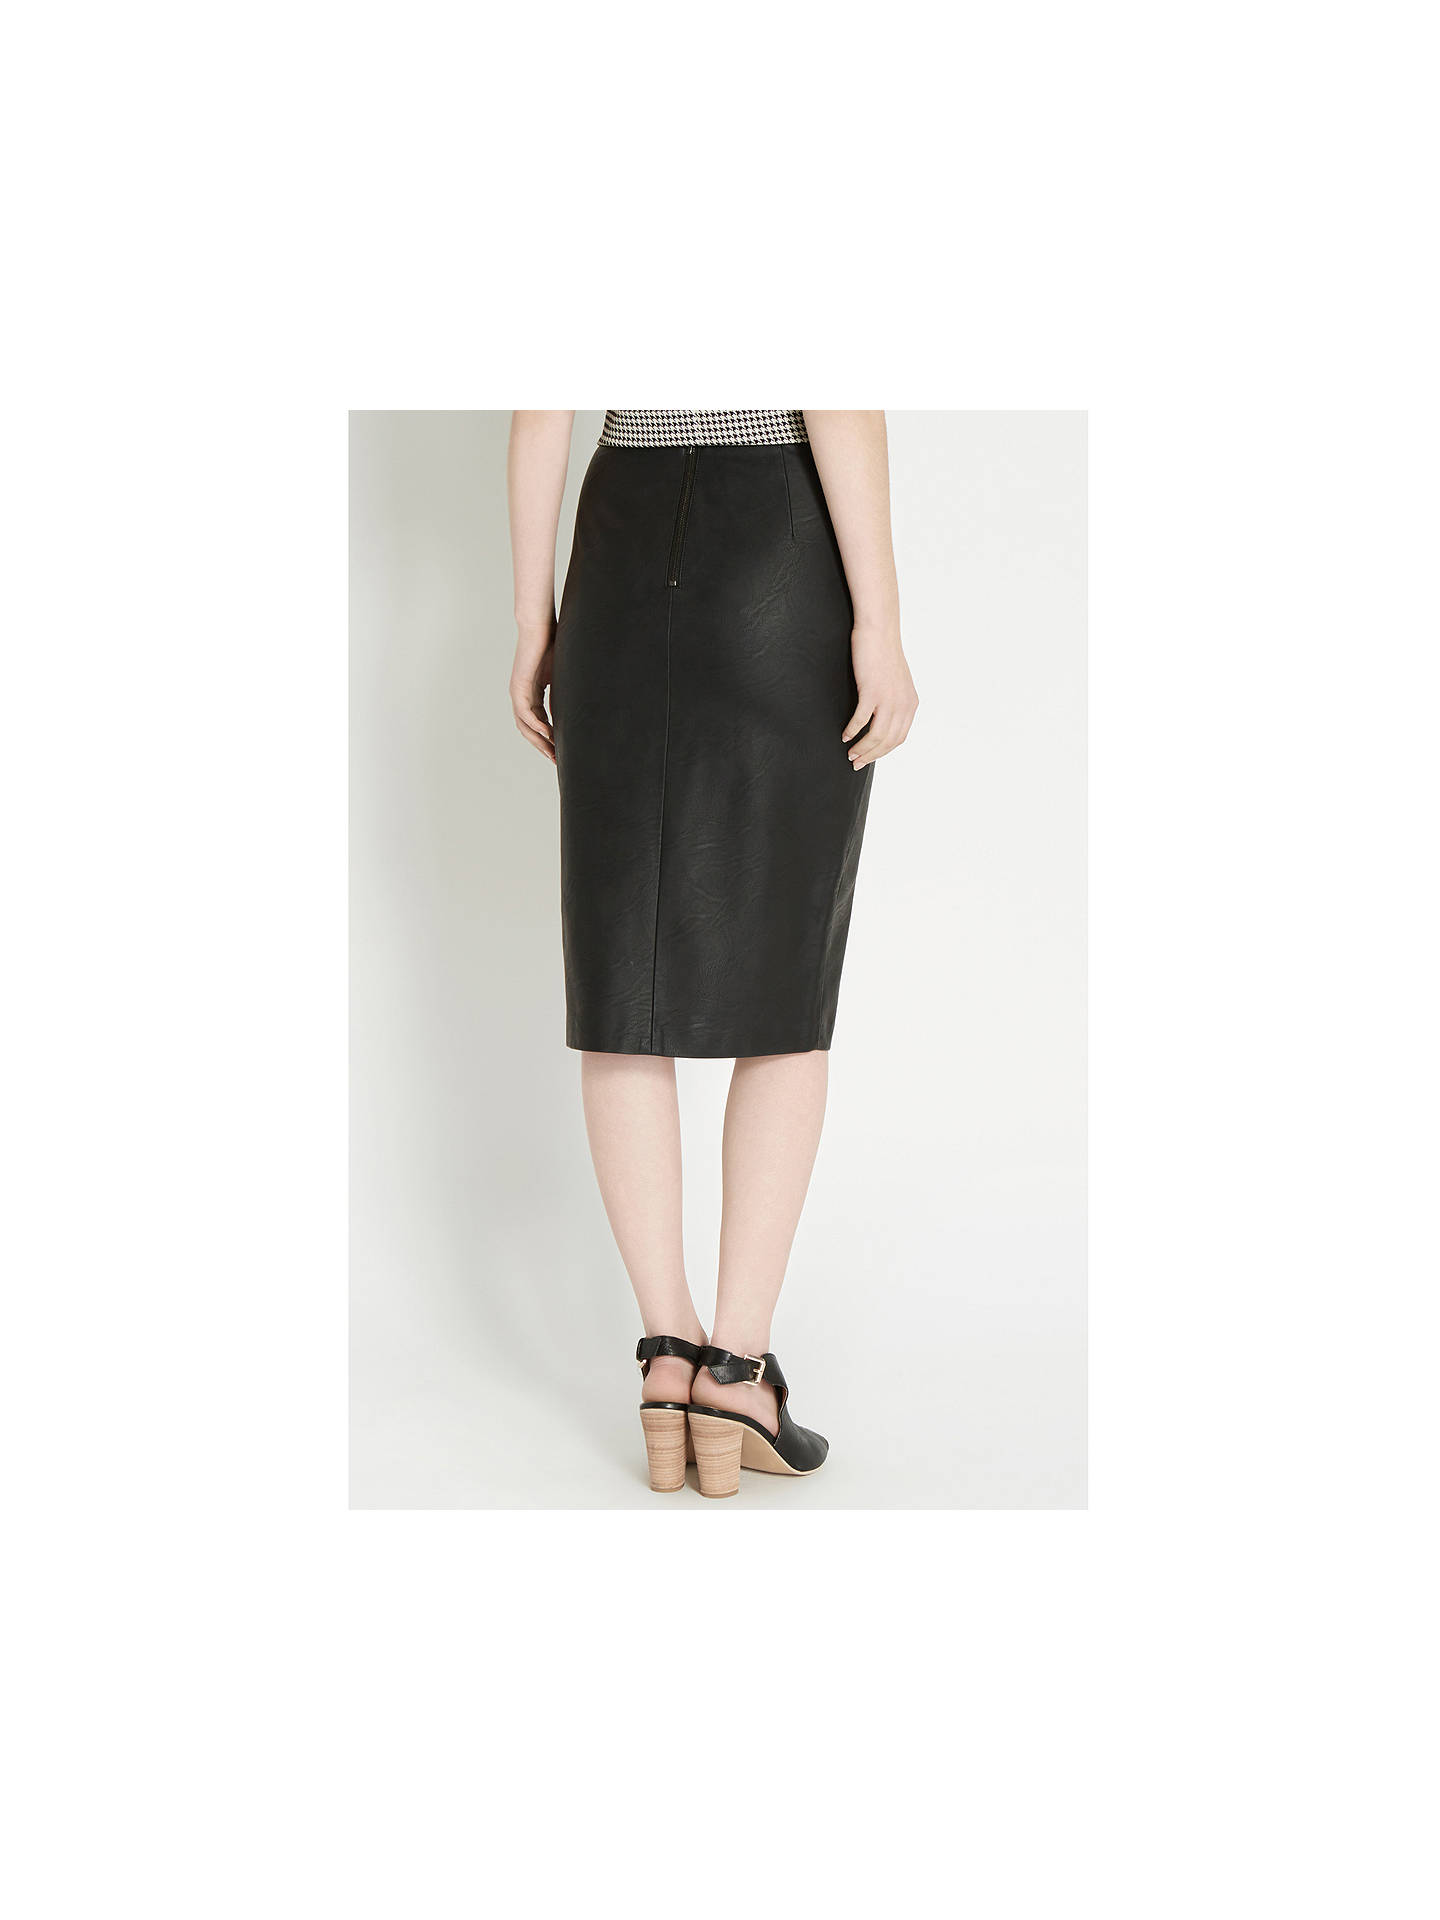 f817a7cdad ... BuyOasis Pippa Faux Leather Pencil Skirt, Black, 8 Online at  johnlewis.com ...